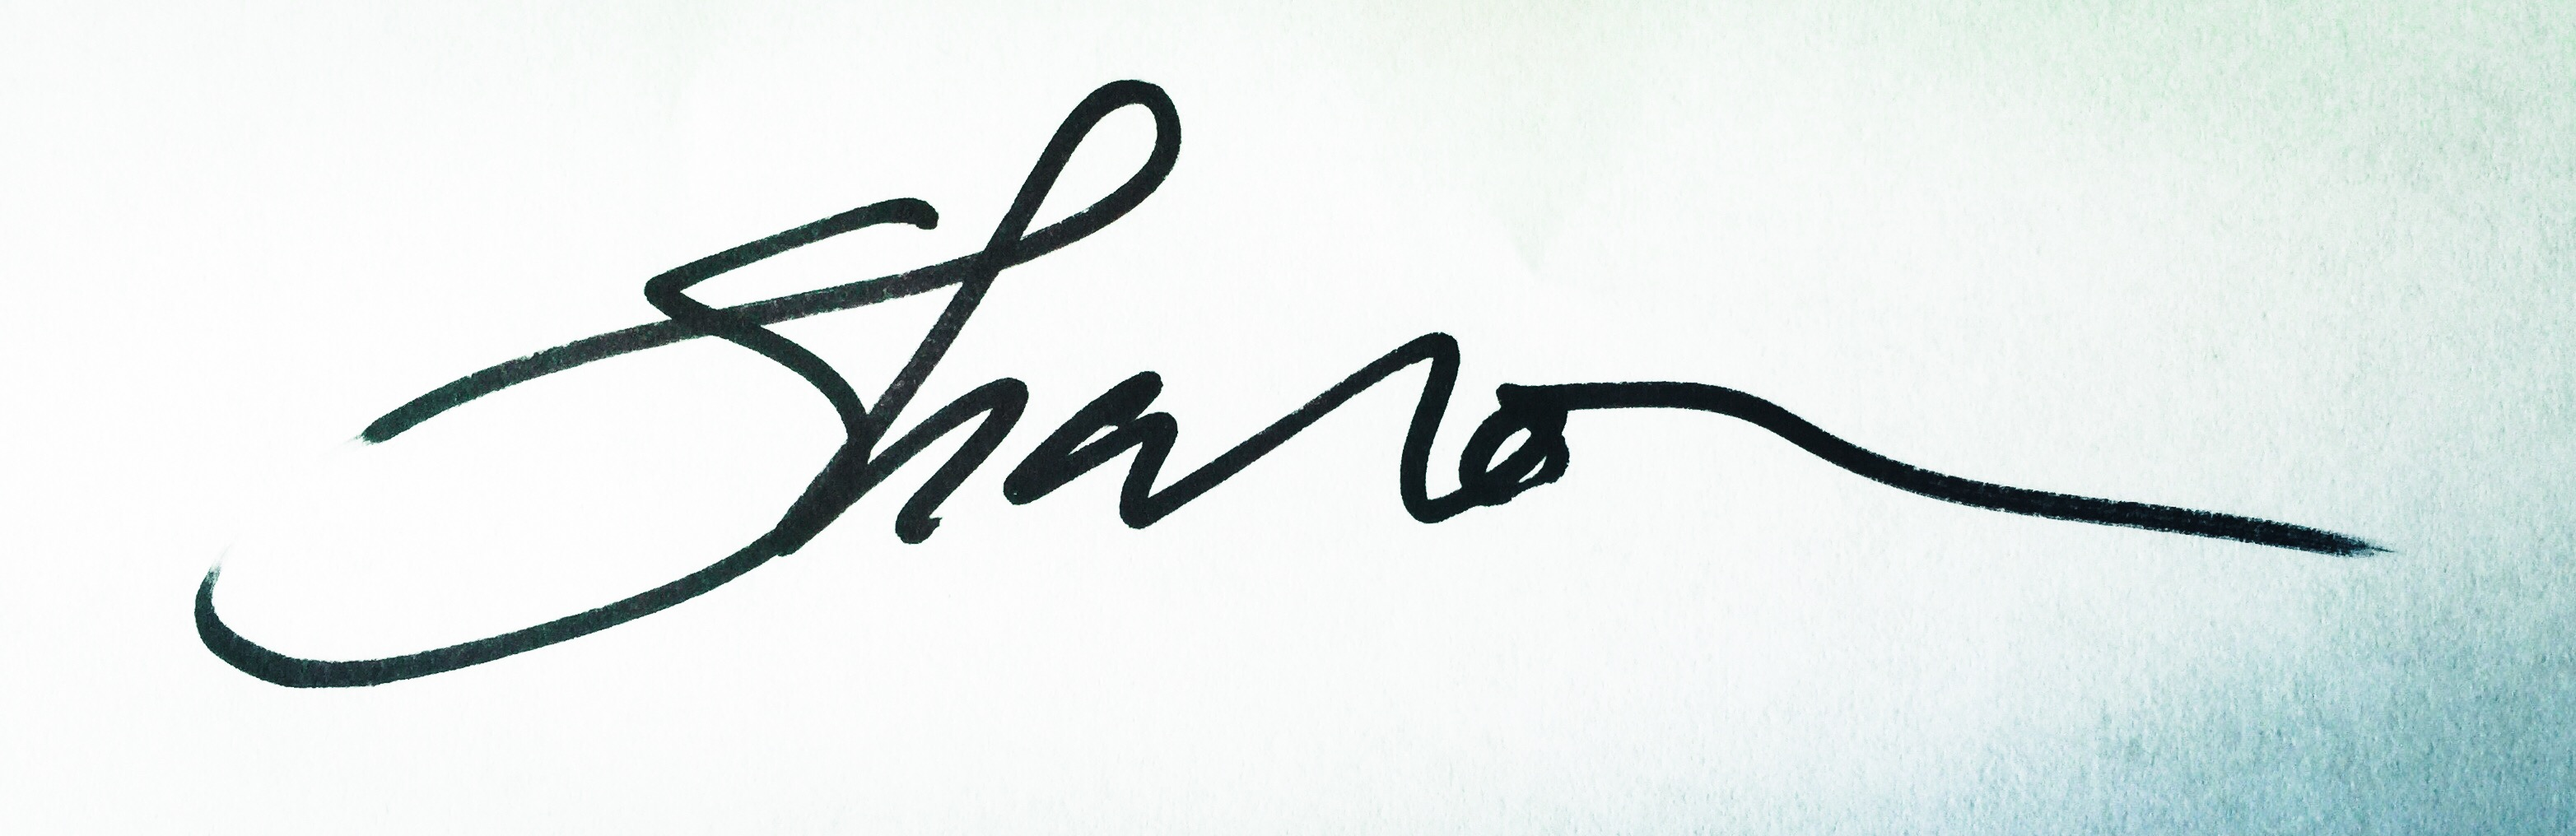 Sharon joy Ng's Signature